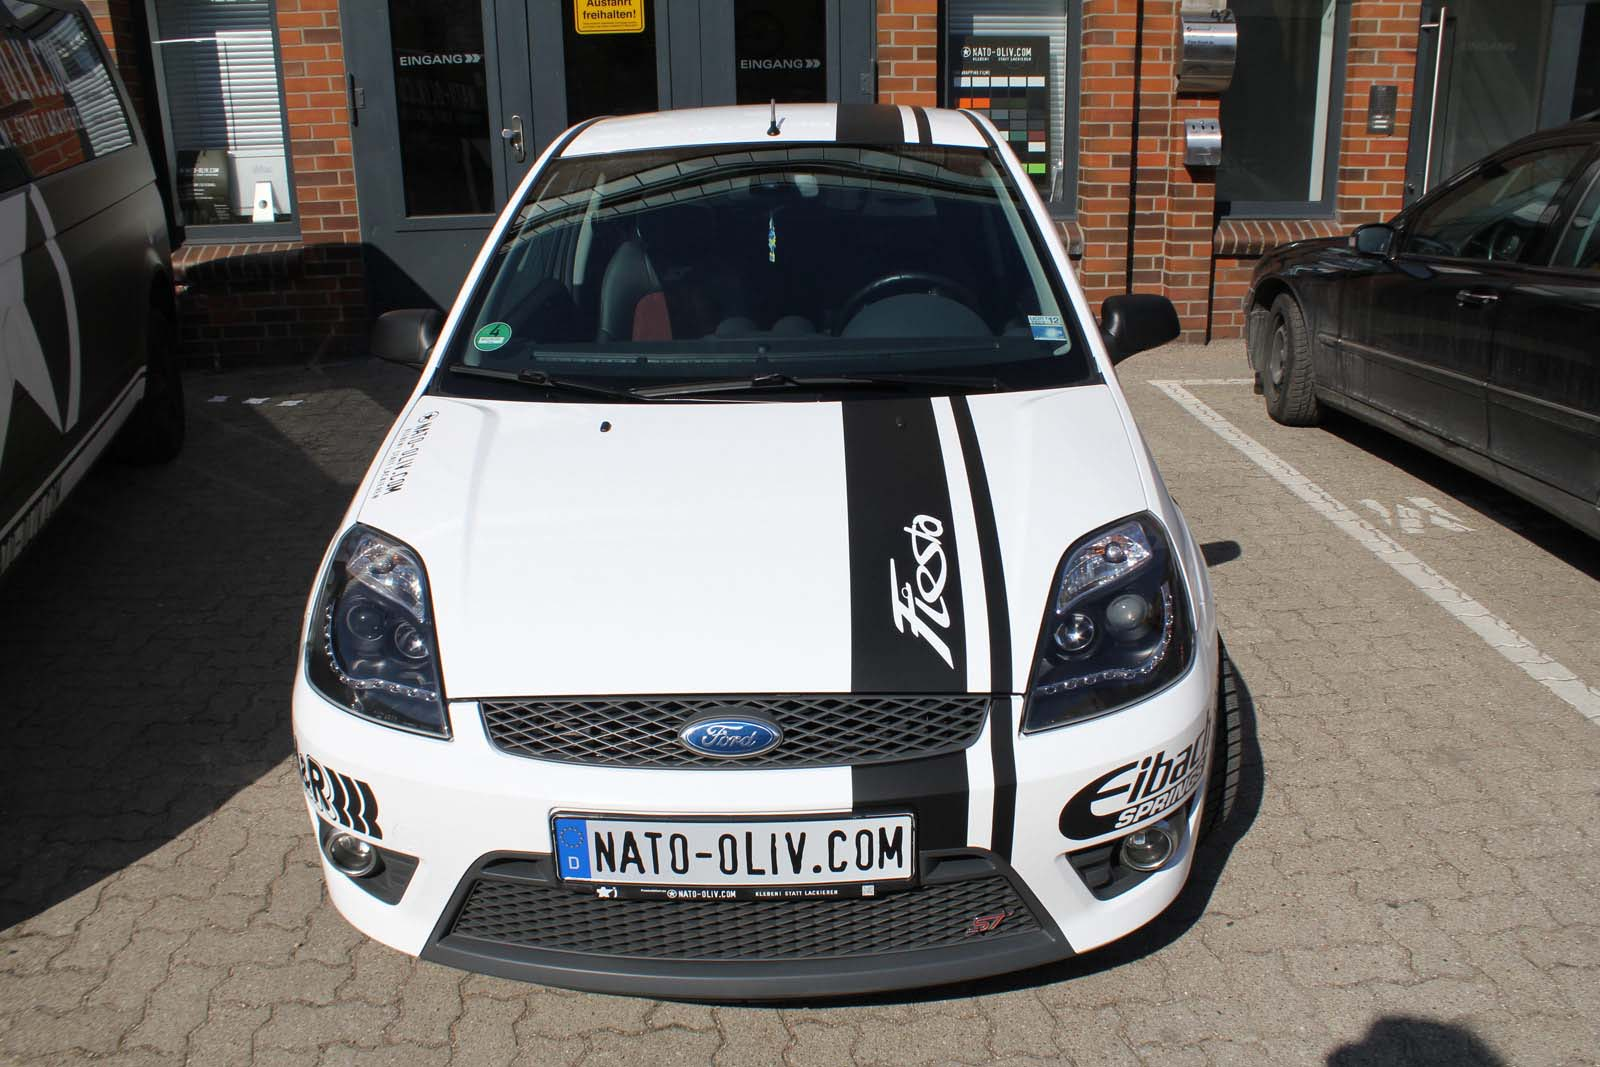 FORD_FIESTA_WRAPPING_WEISS_GLANZ_MIT_RACING_DESIGN_SCHWARZ_MATT_25